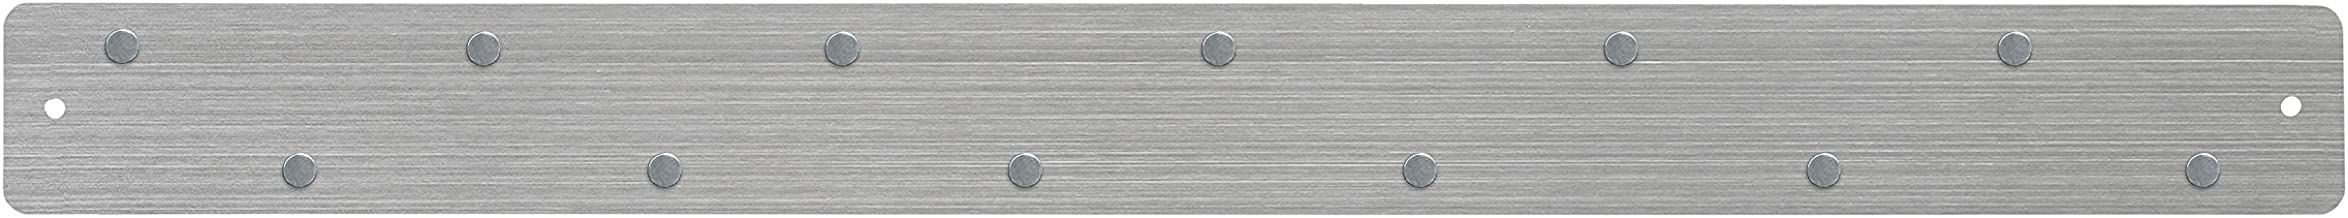 Three By Three Seattle Magnetic Strip Bulletin Board, Stainless (31105)